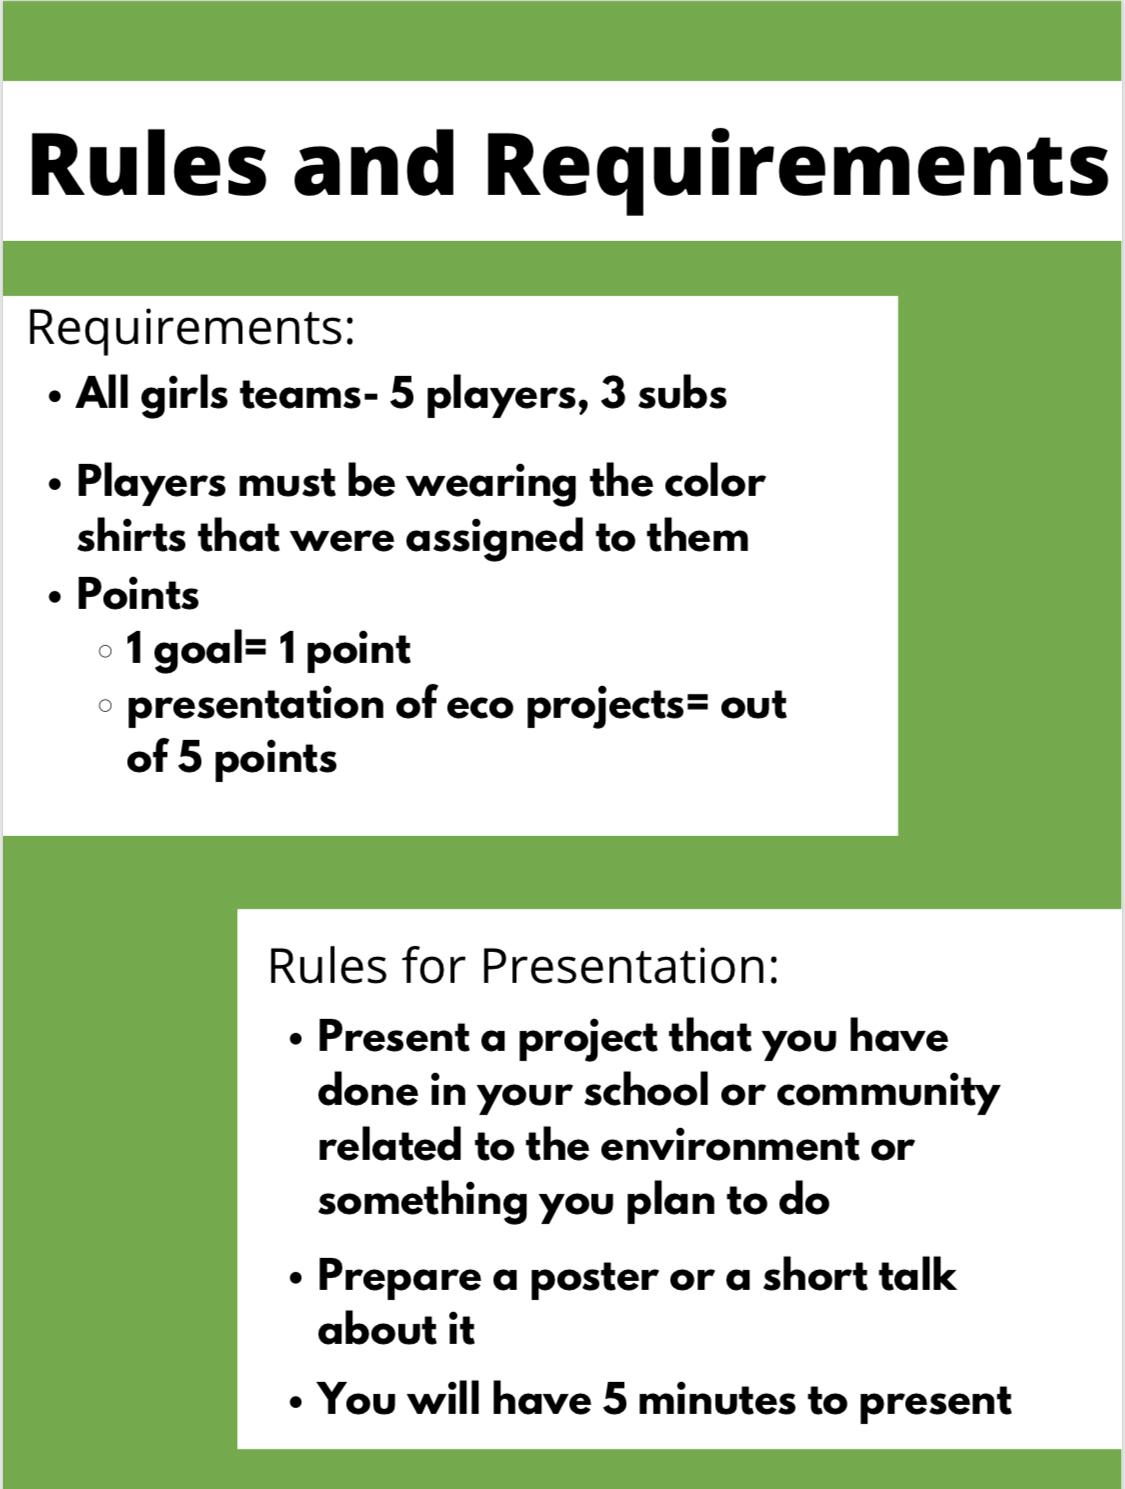 Climate Action Themed Football Tournament For Girls Rules and Requirements